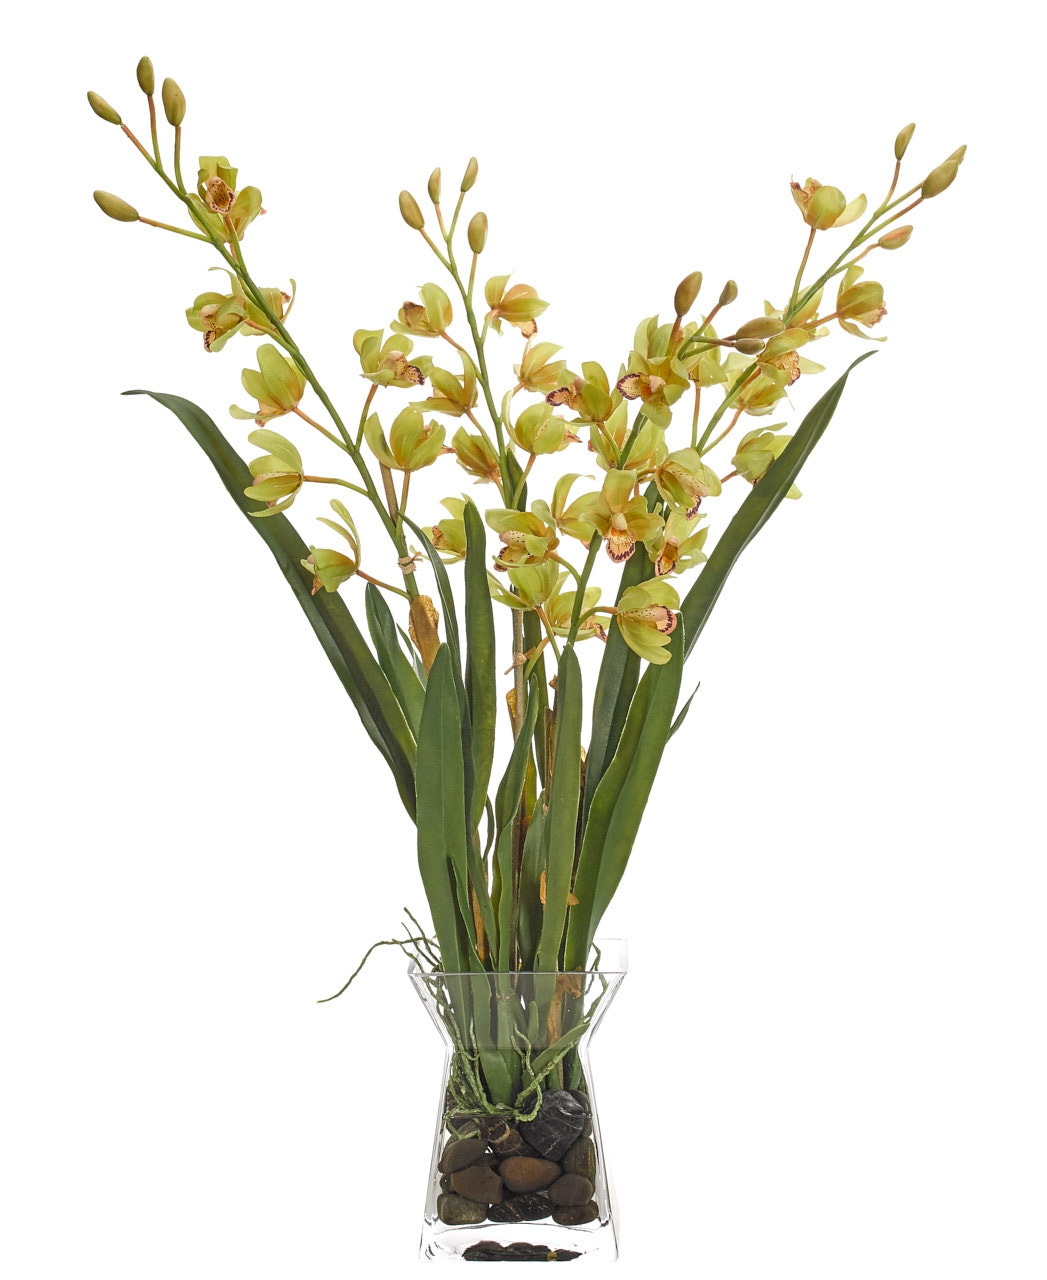 Glass tower Vase Of orchid Cymbidium Green Glass tower Vase 23wx22dx28h Inside 21911b3120e7ac04c5c629c81316